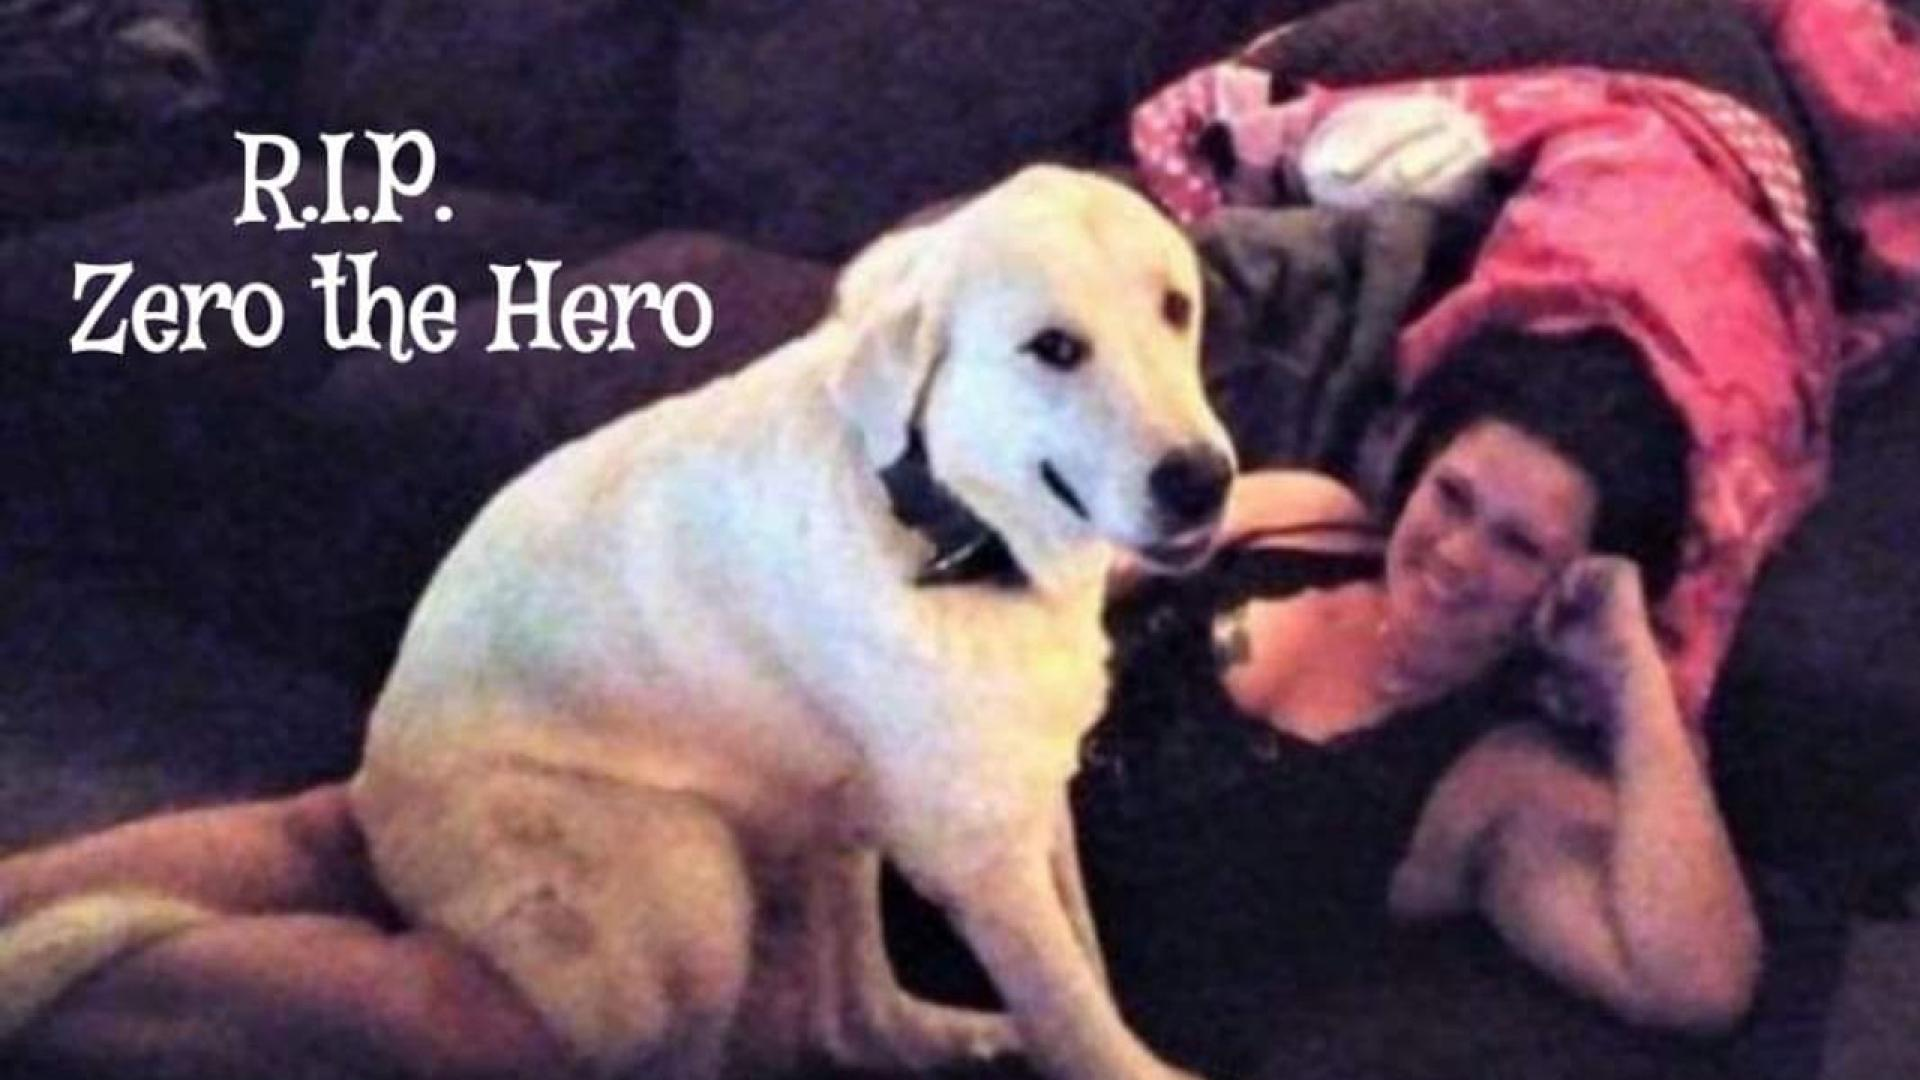 Zero lost his life protecting his family.